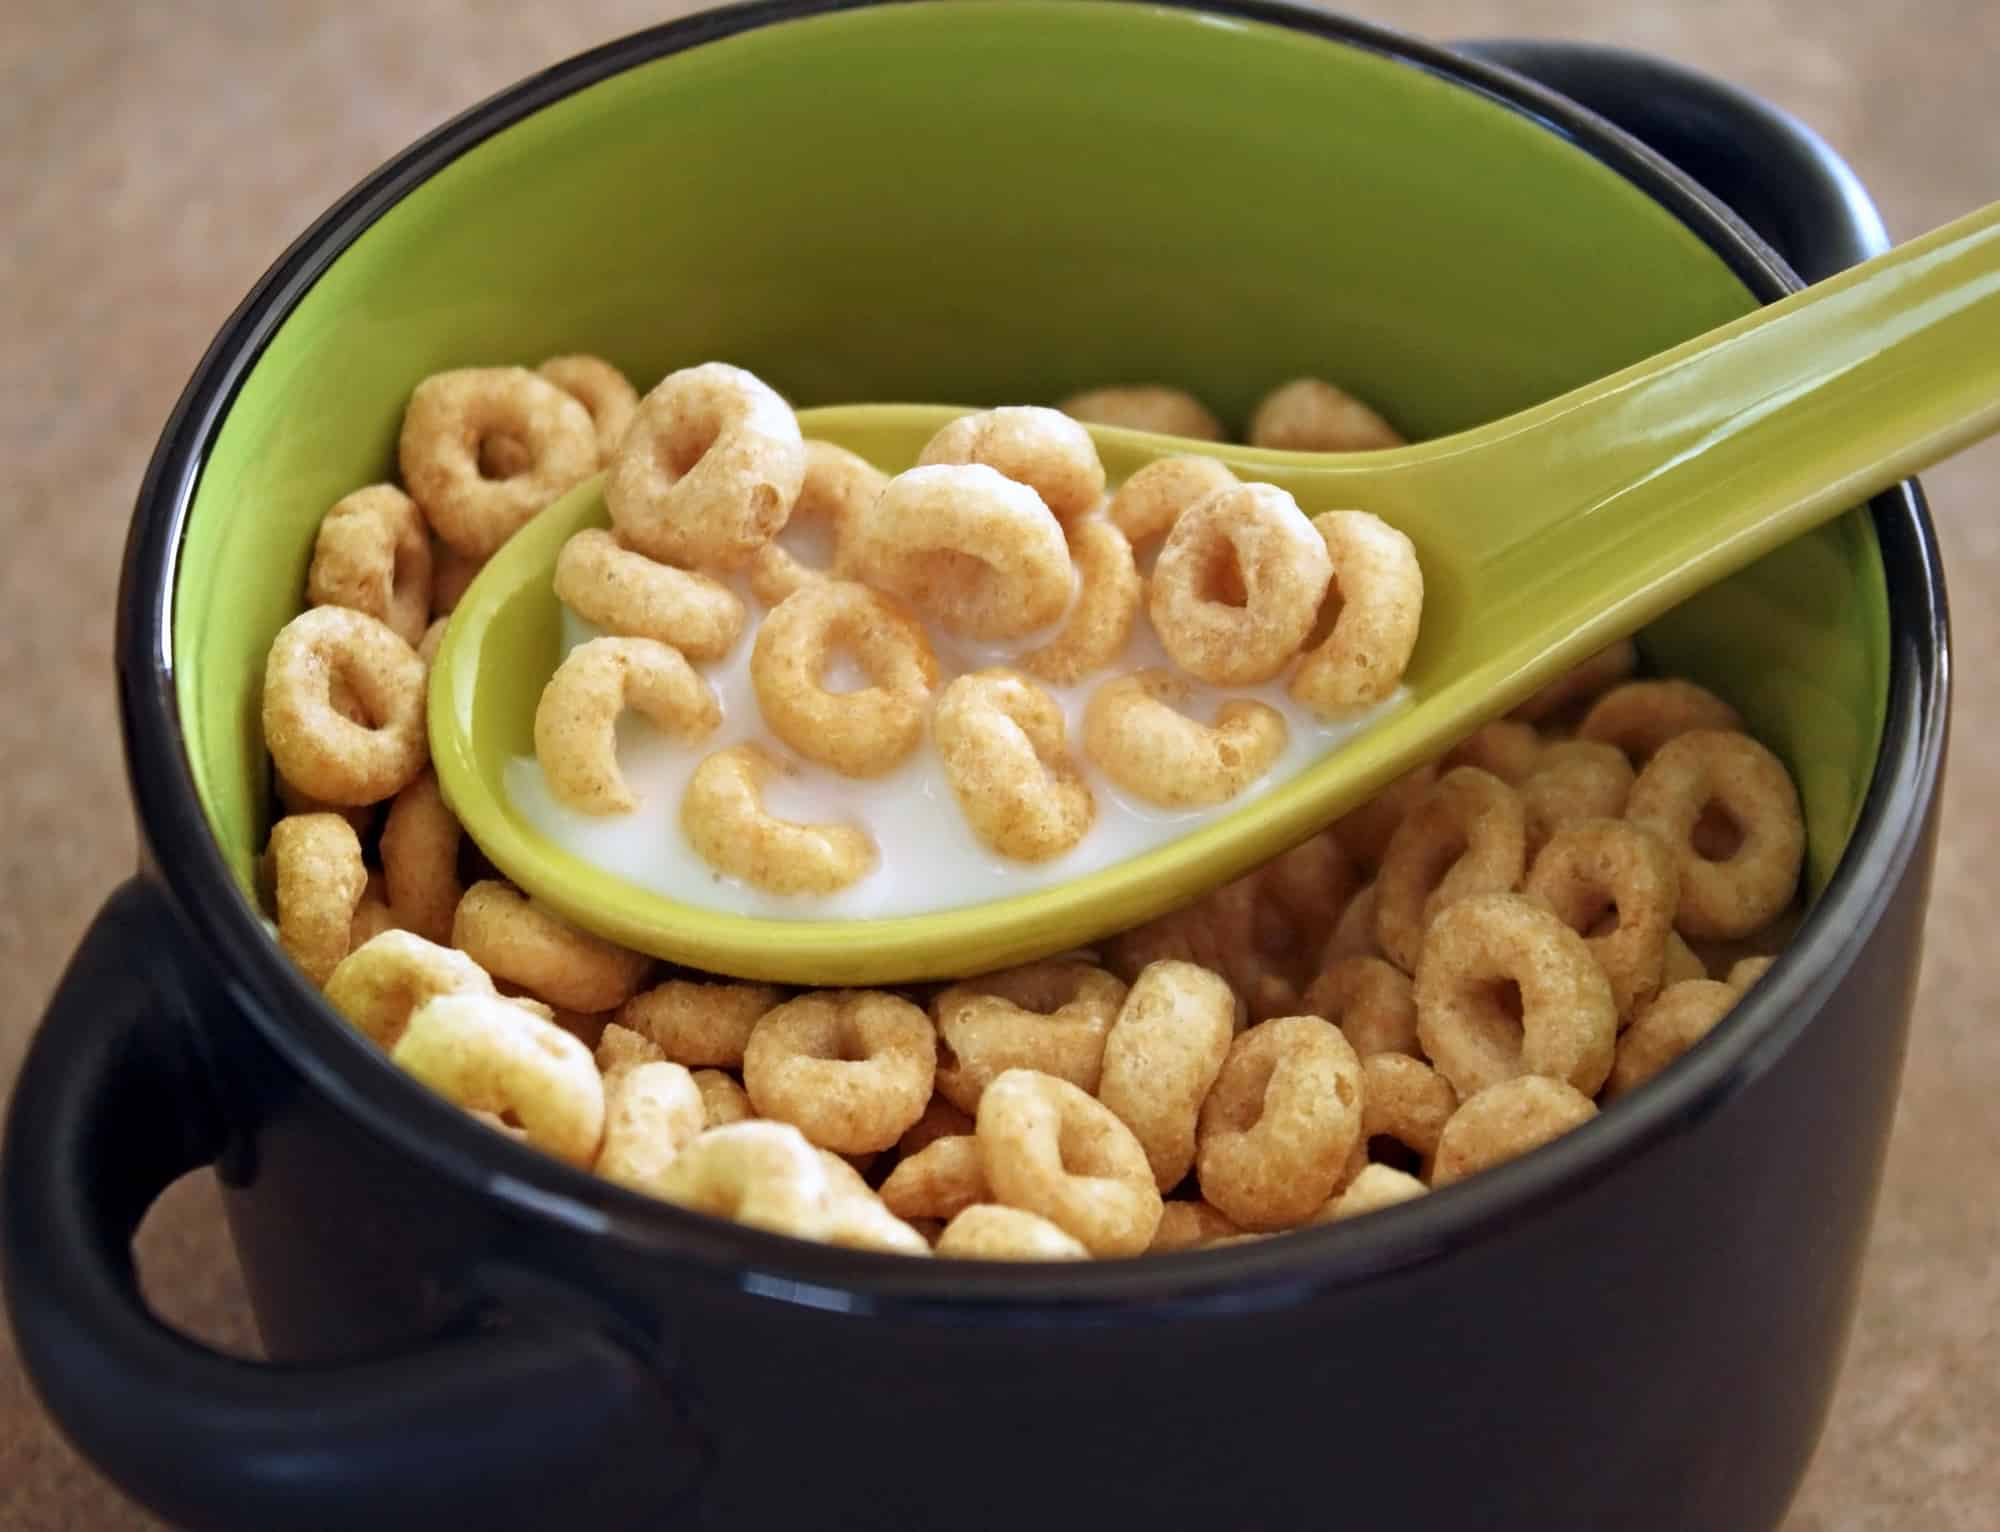 Cheerios with glyphosate in a green bowl